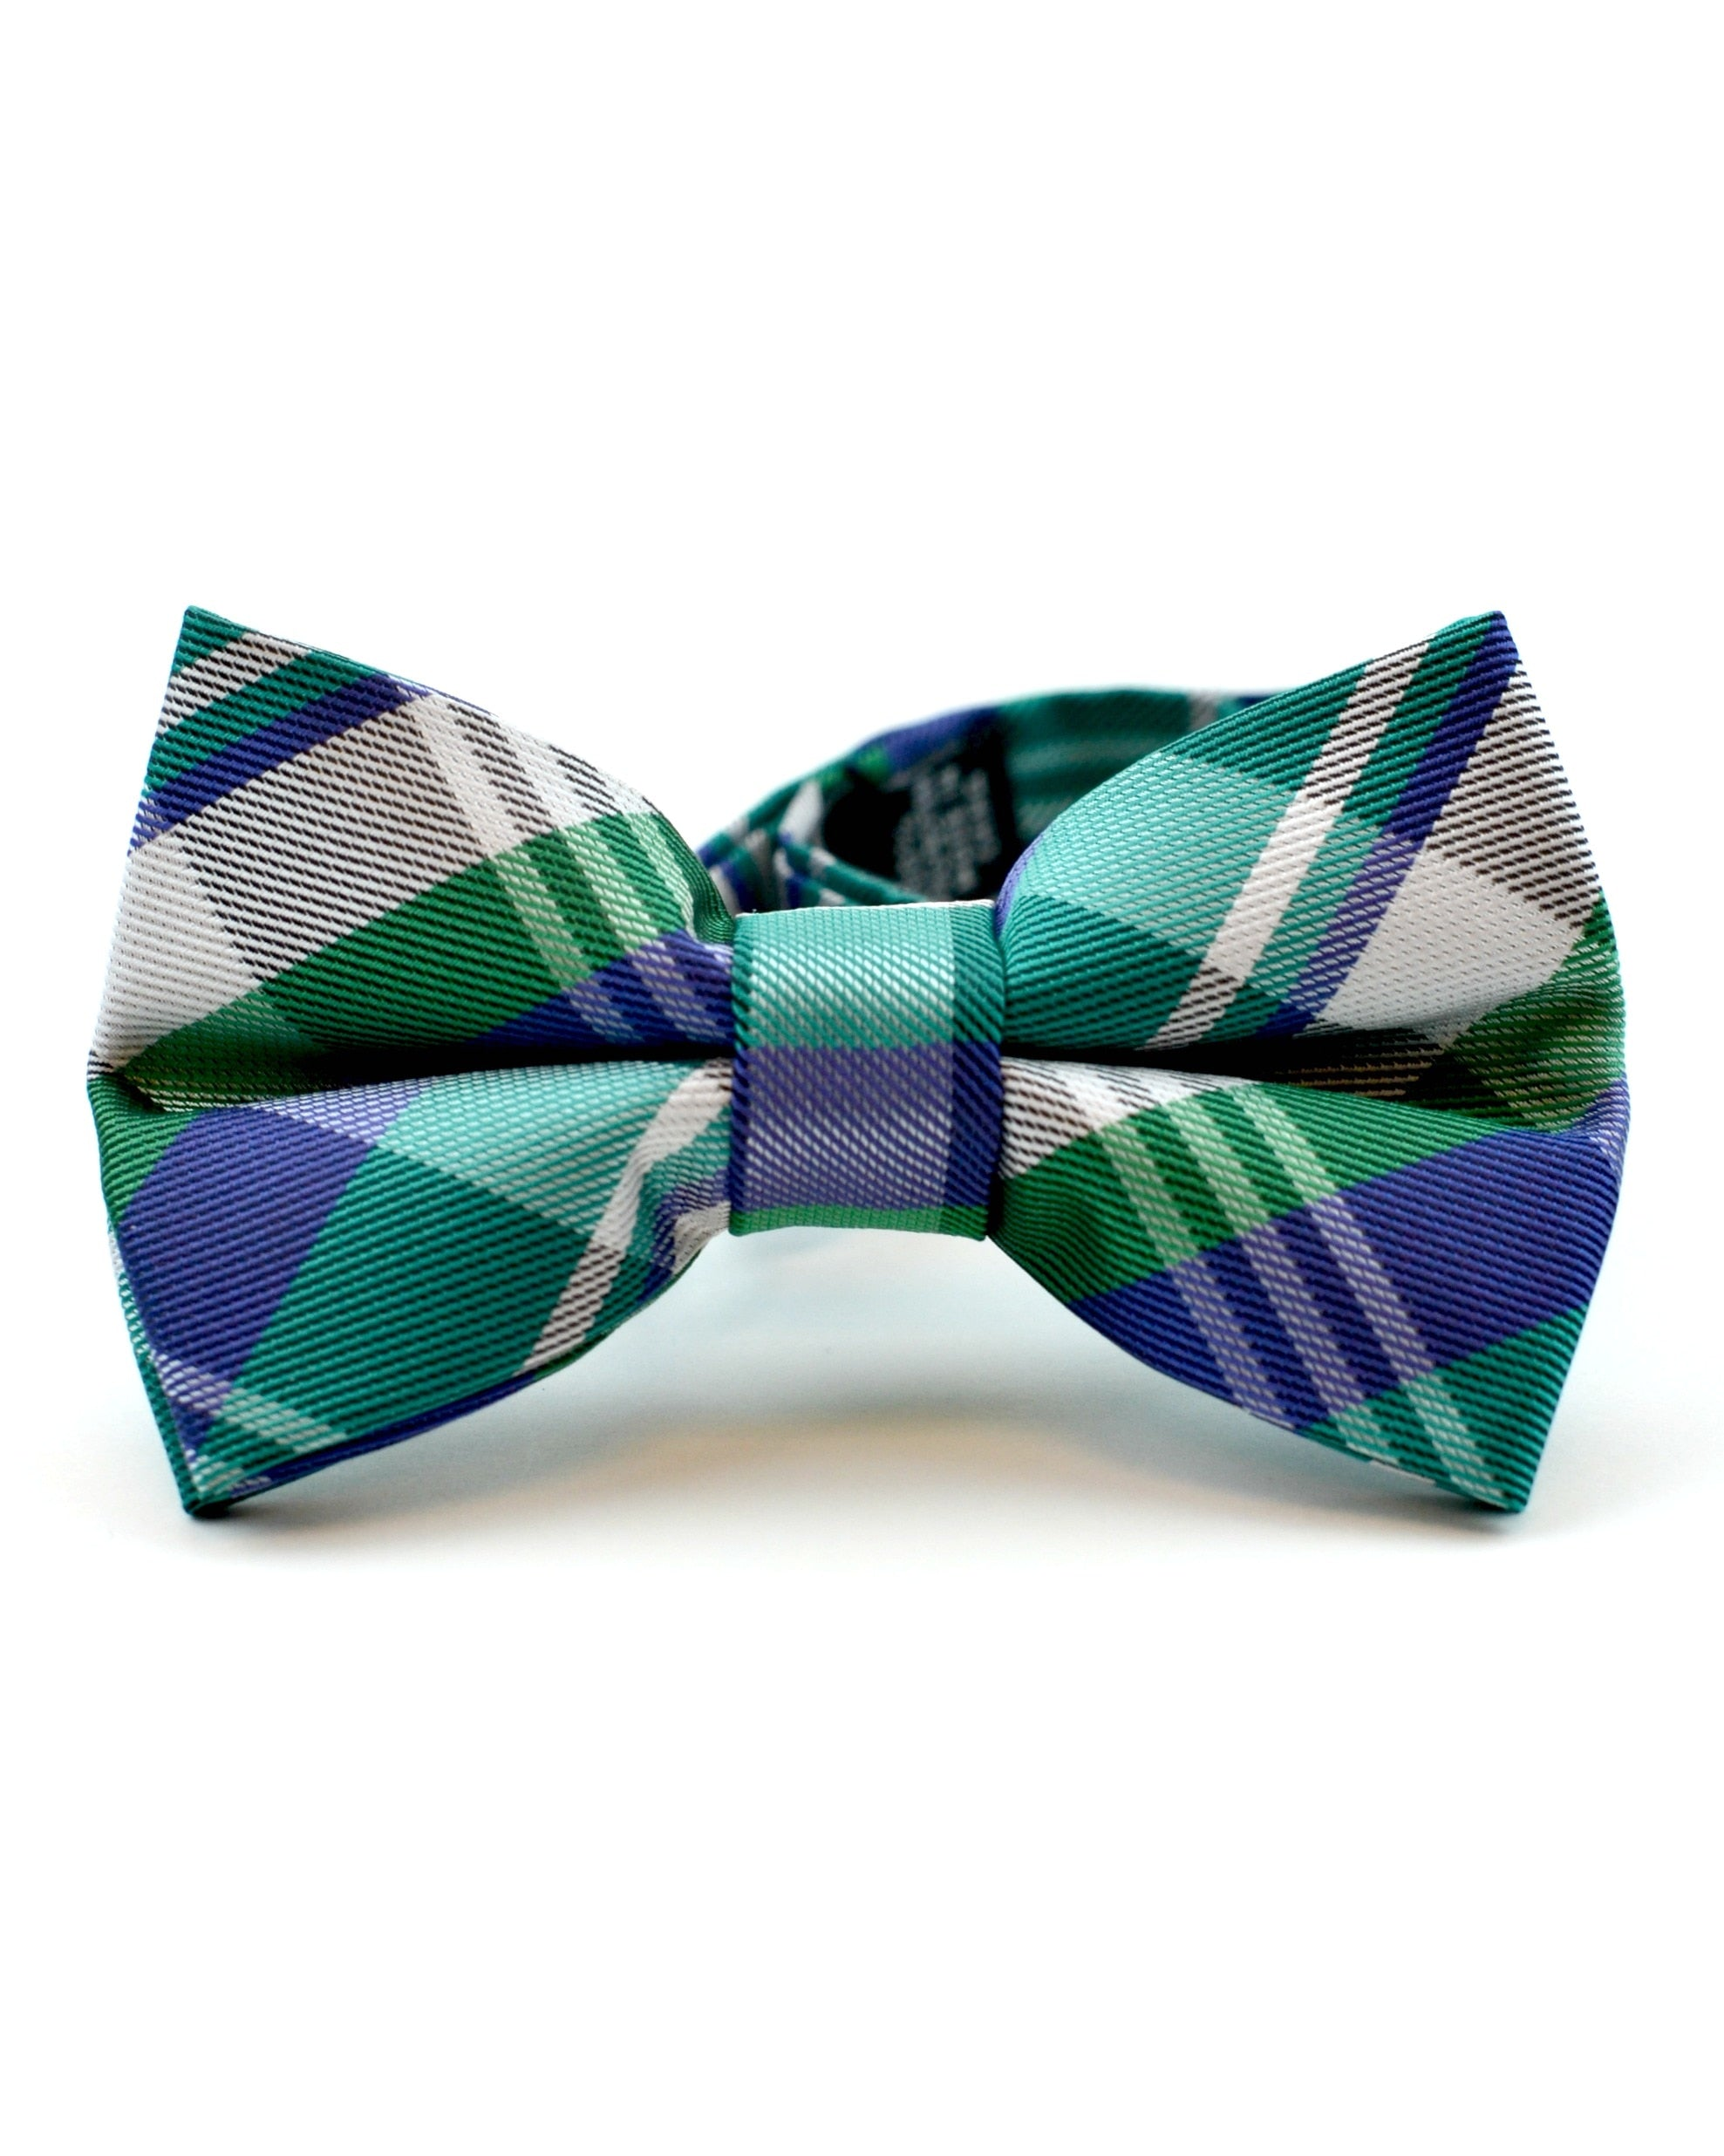 emerald-and-indigo-plaid-bow.jpg